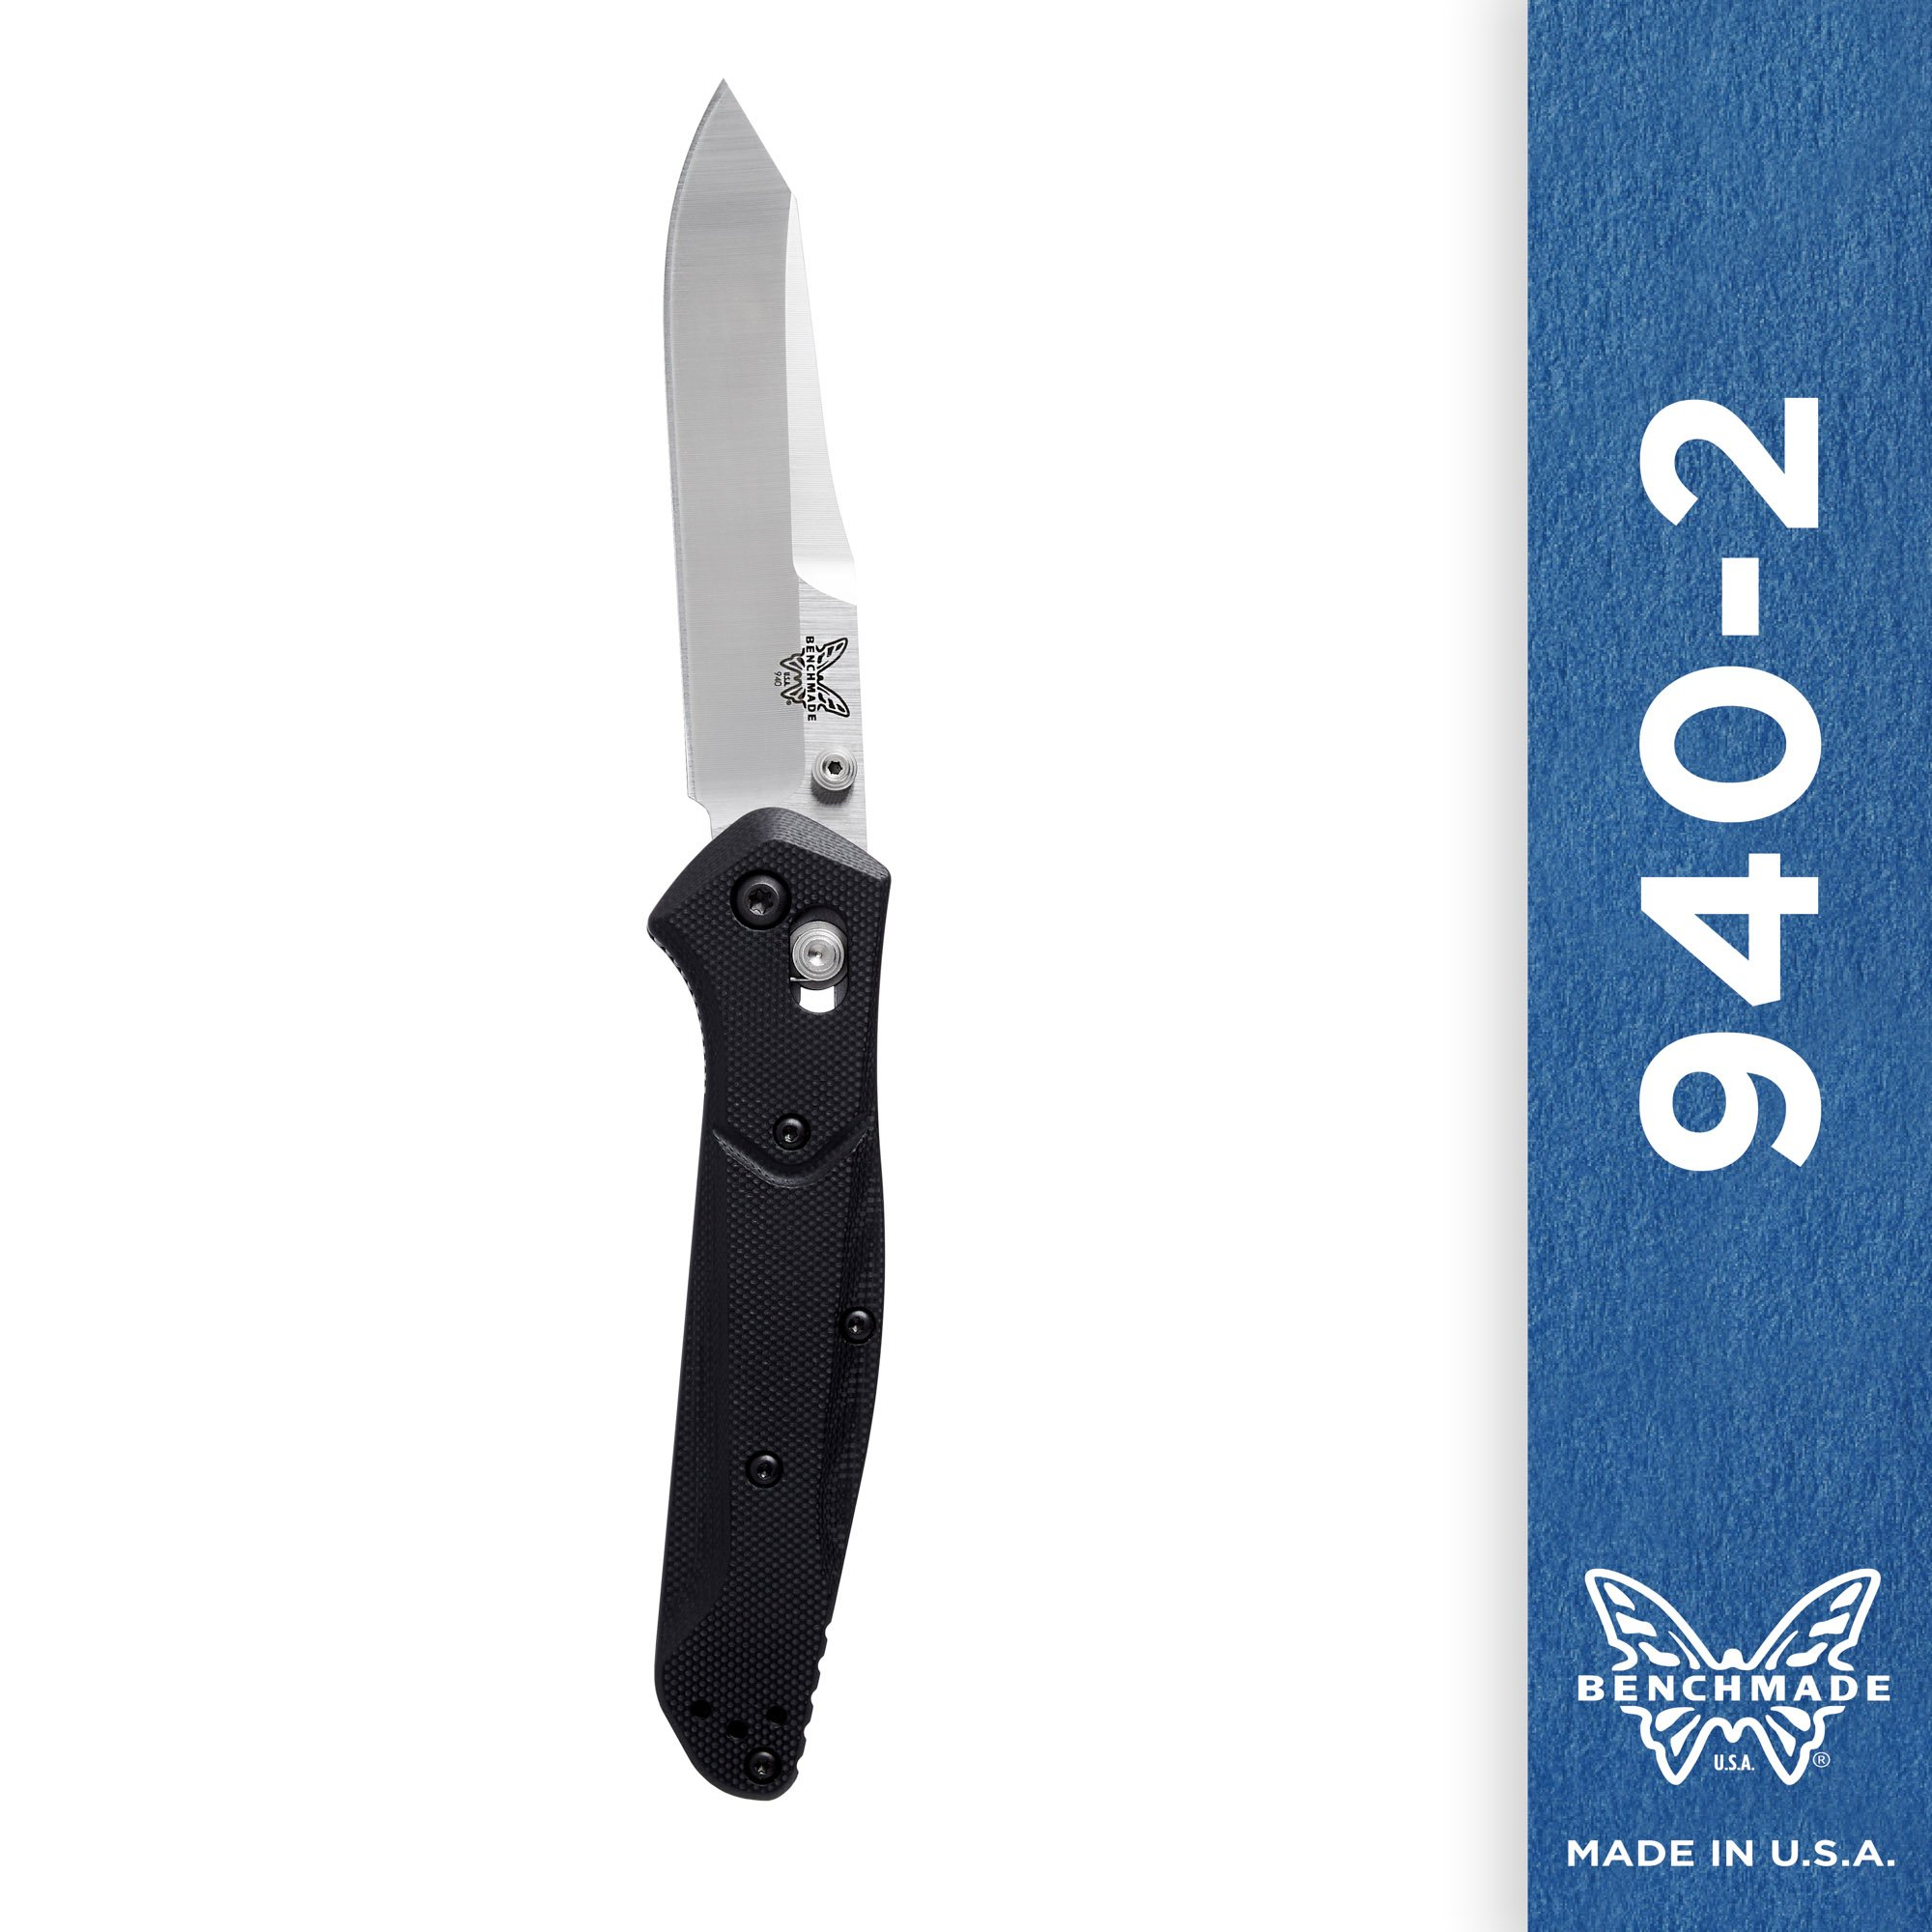 Benchmade 940-2 Osborne G10 Knife Handle by Benchmade